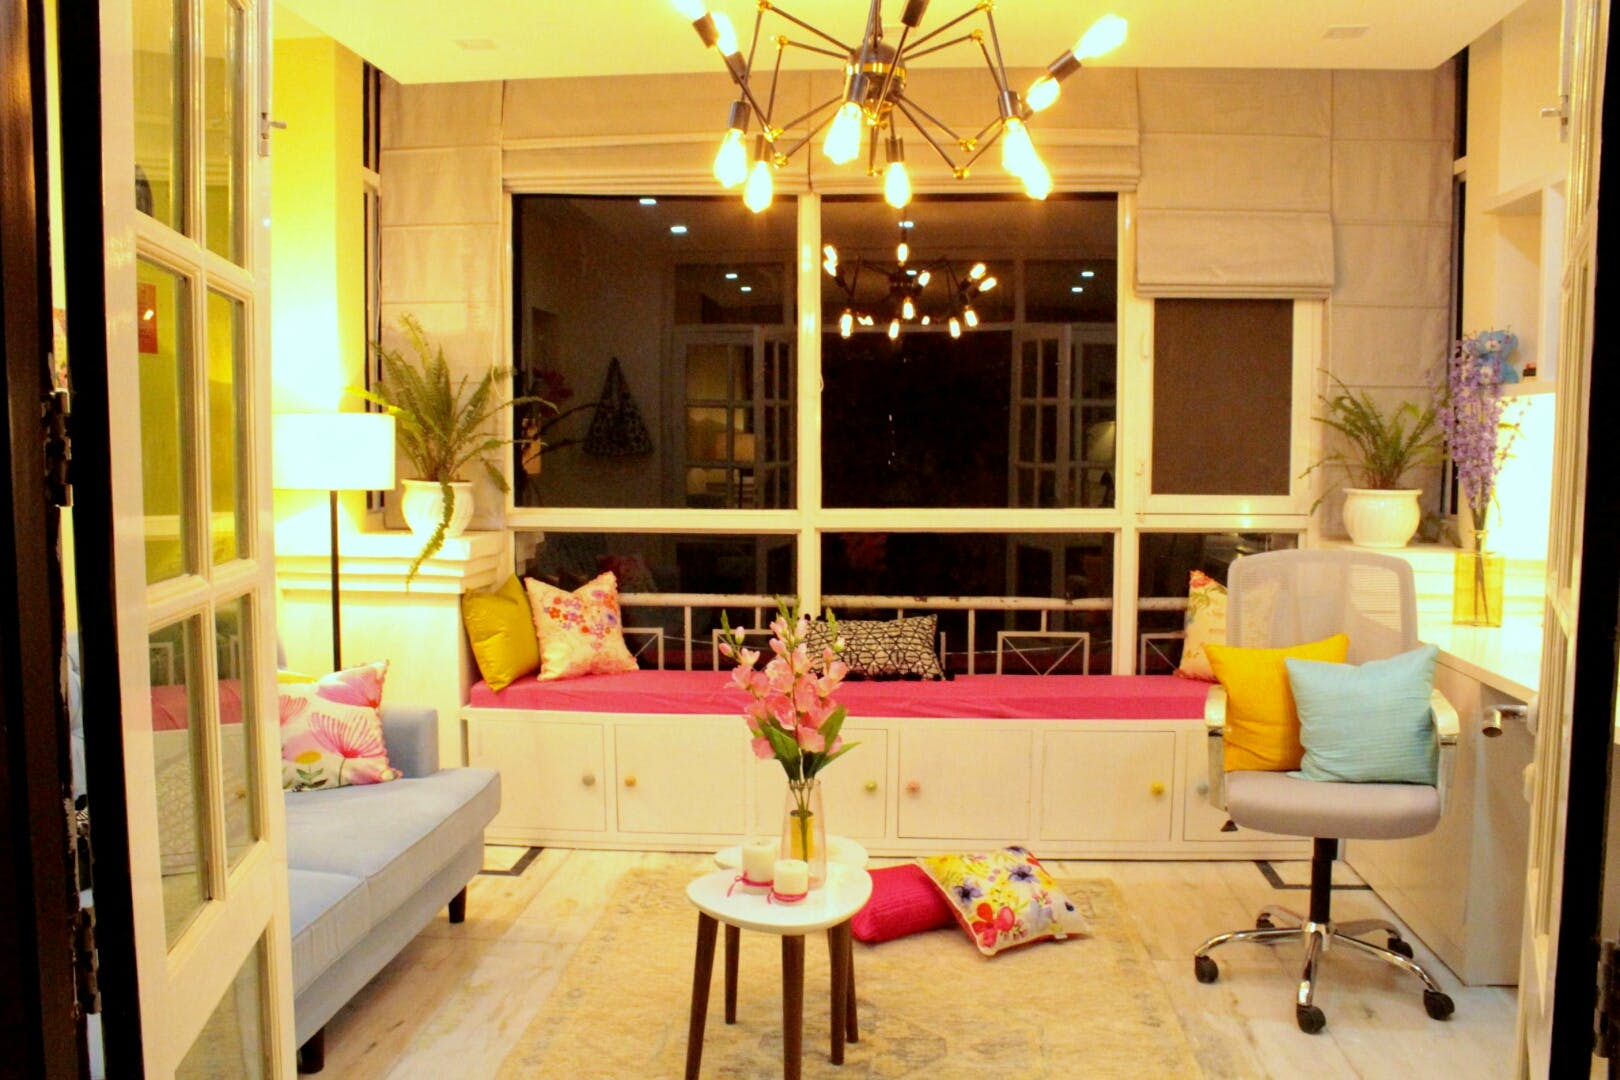 Revamp Your Drab Spaces Into Dream Homes With Sheek Designs